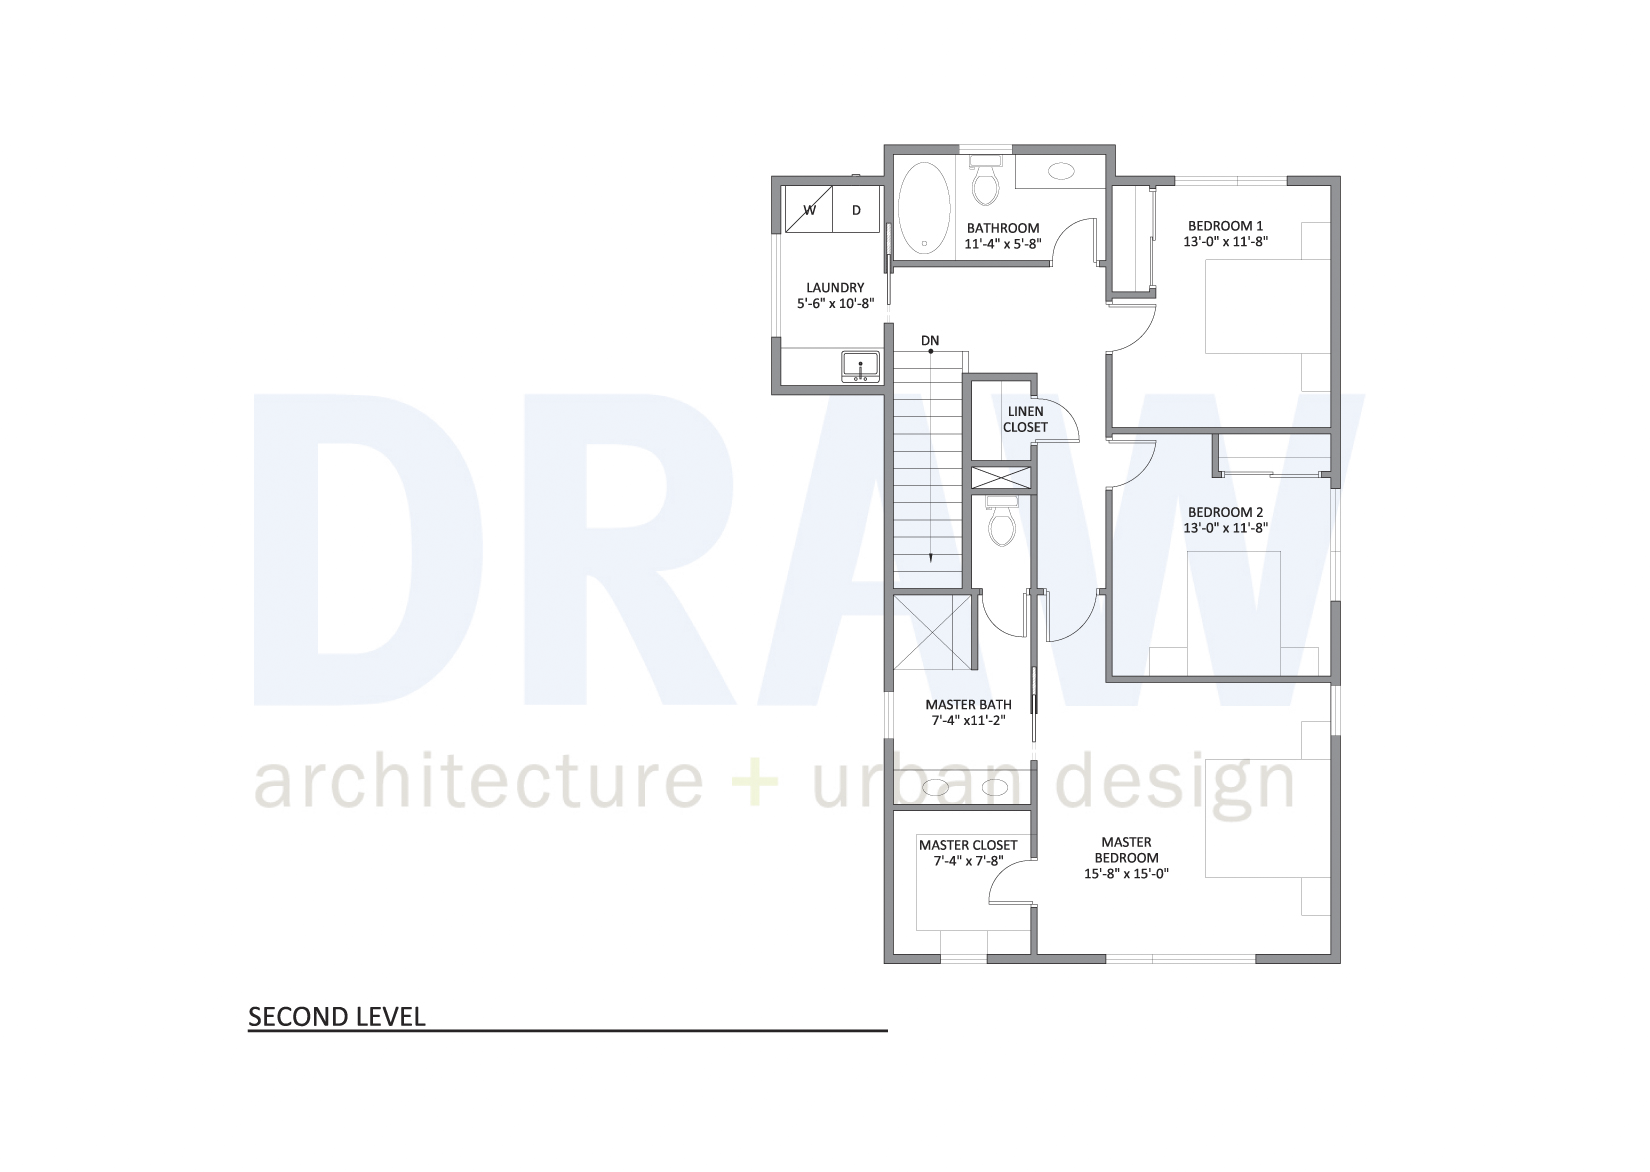 Urban North - House Plan 1 second level floor plan